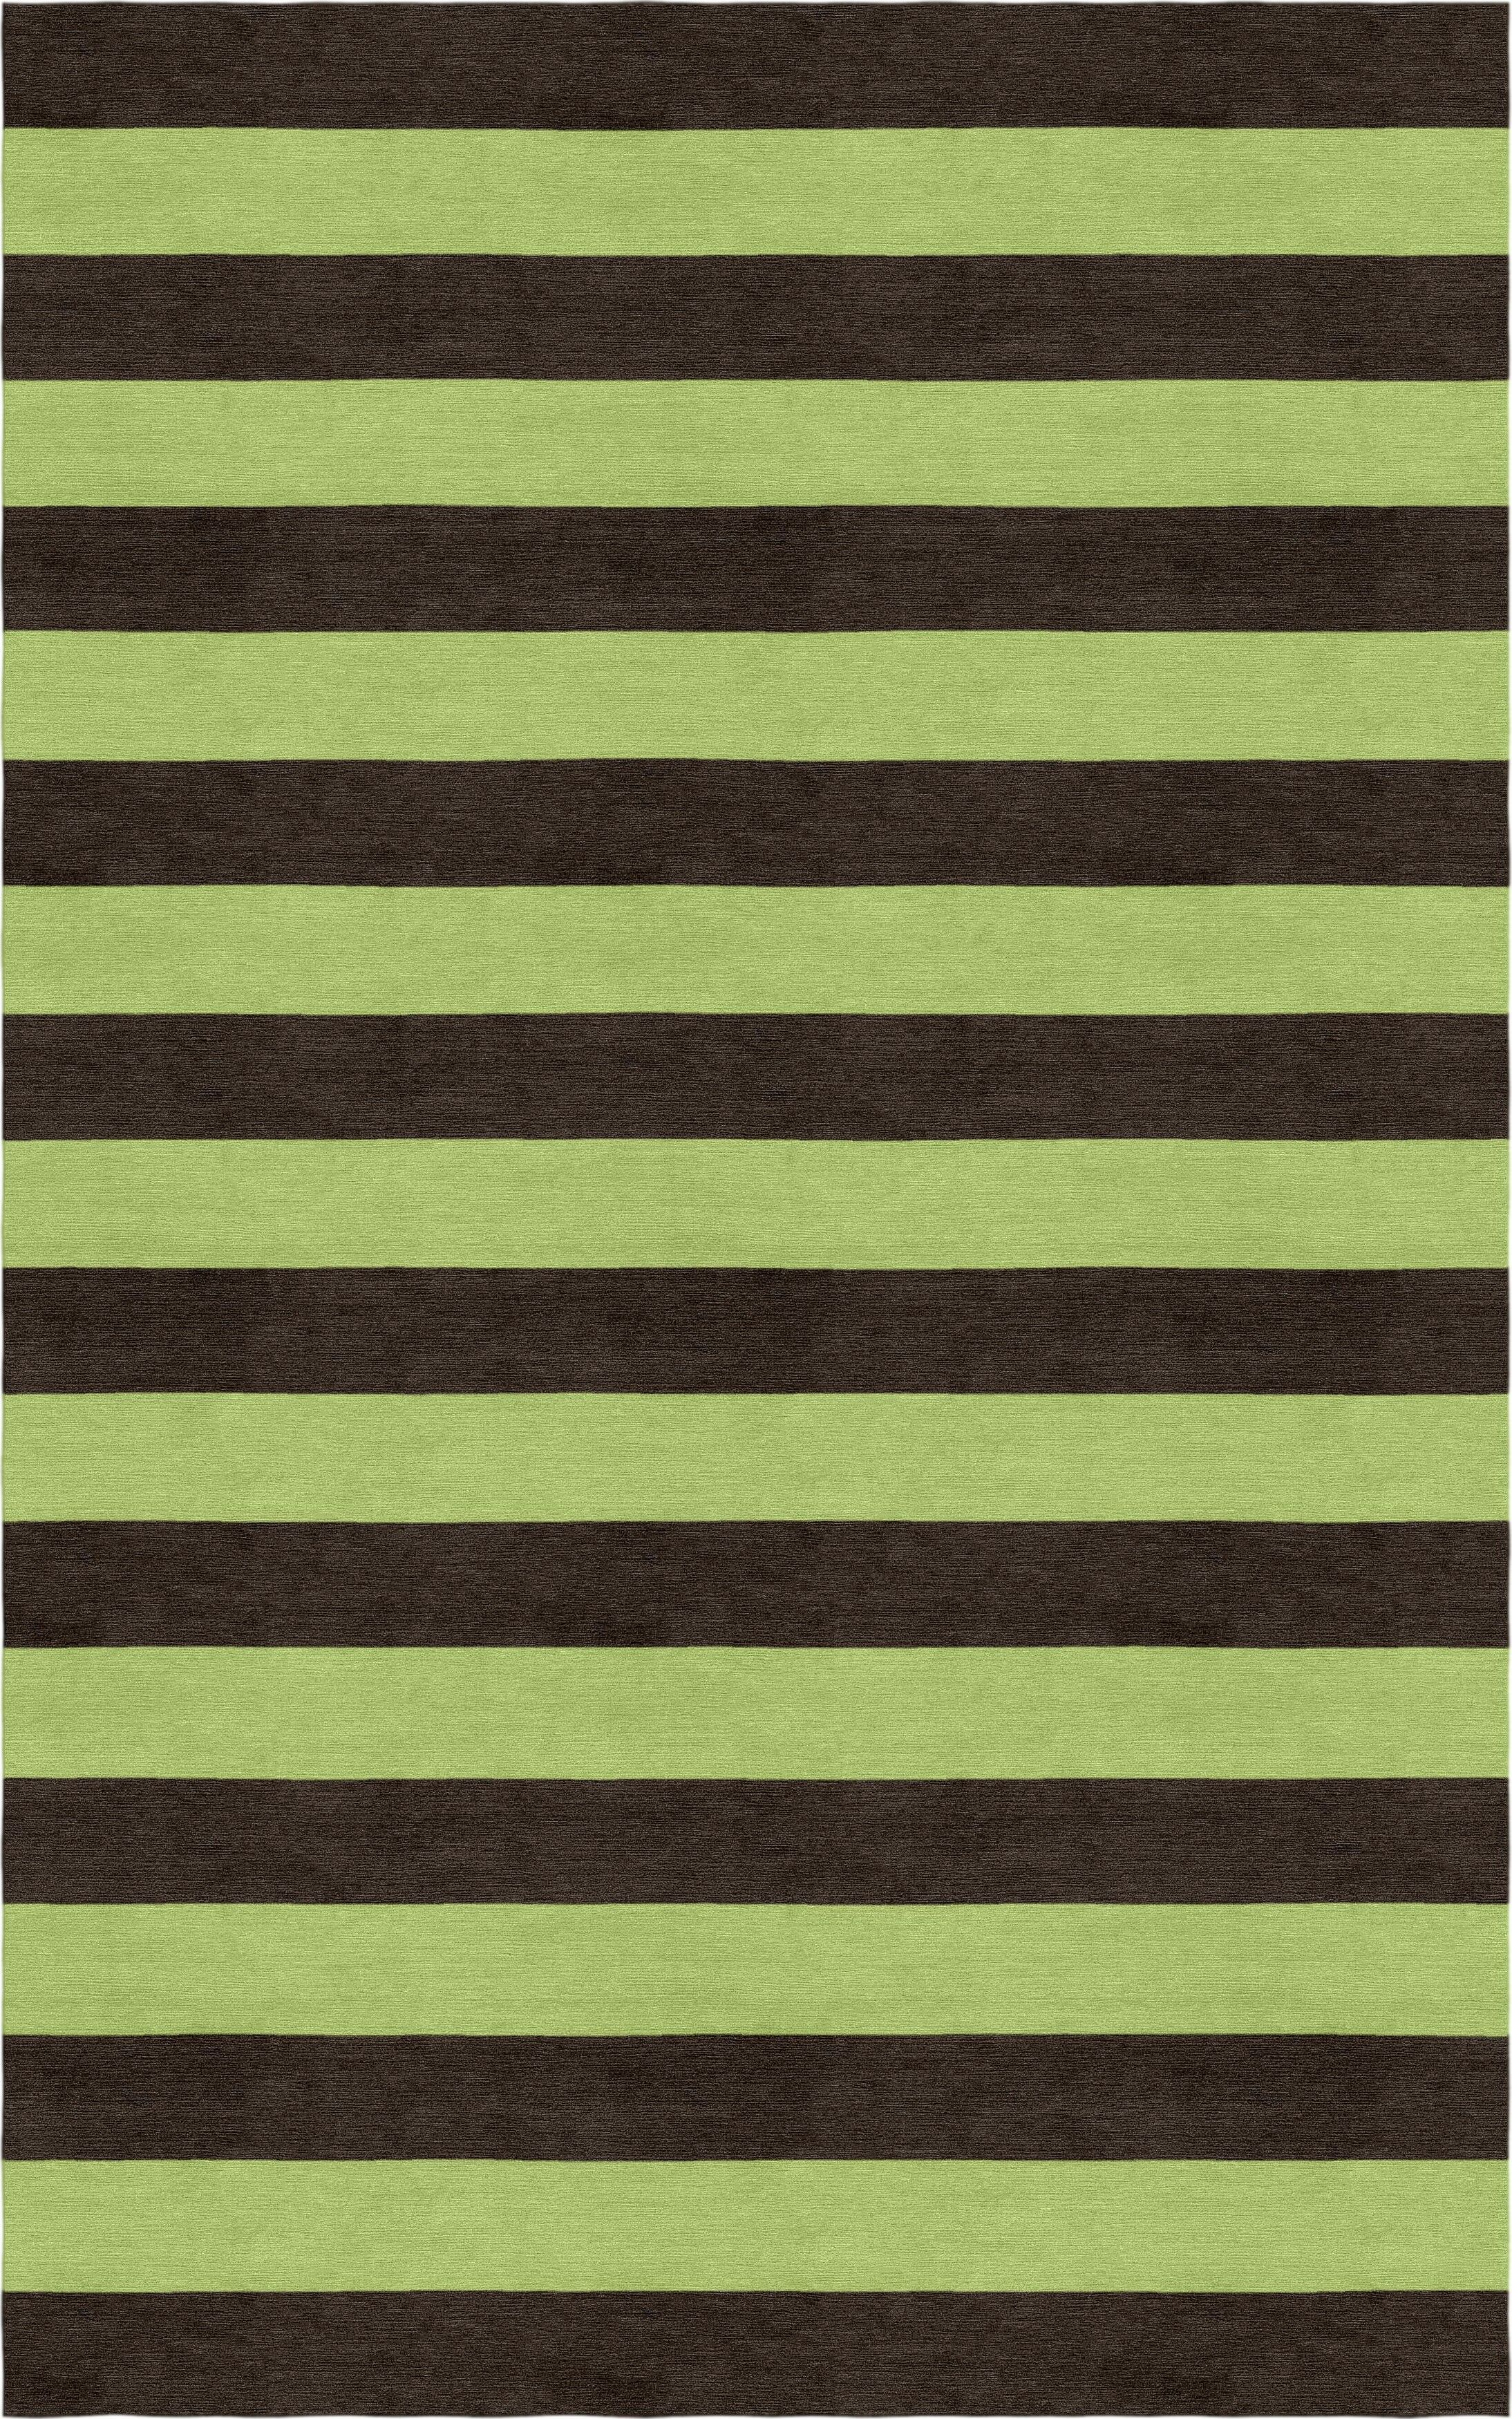 Suggs Stripe Hand-Tufted Wool Brown/Green Area Rug Rug Size: Rectangle 6' x 9'